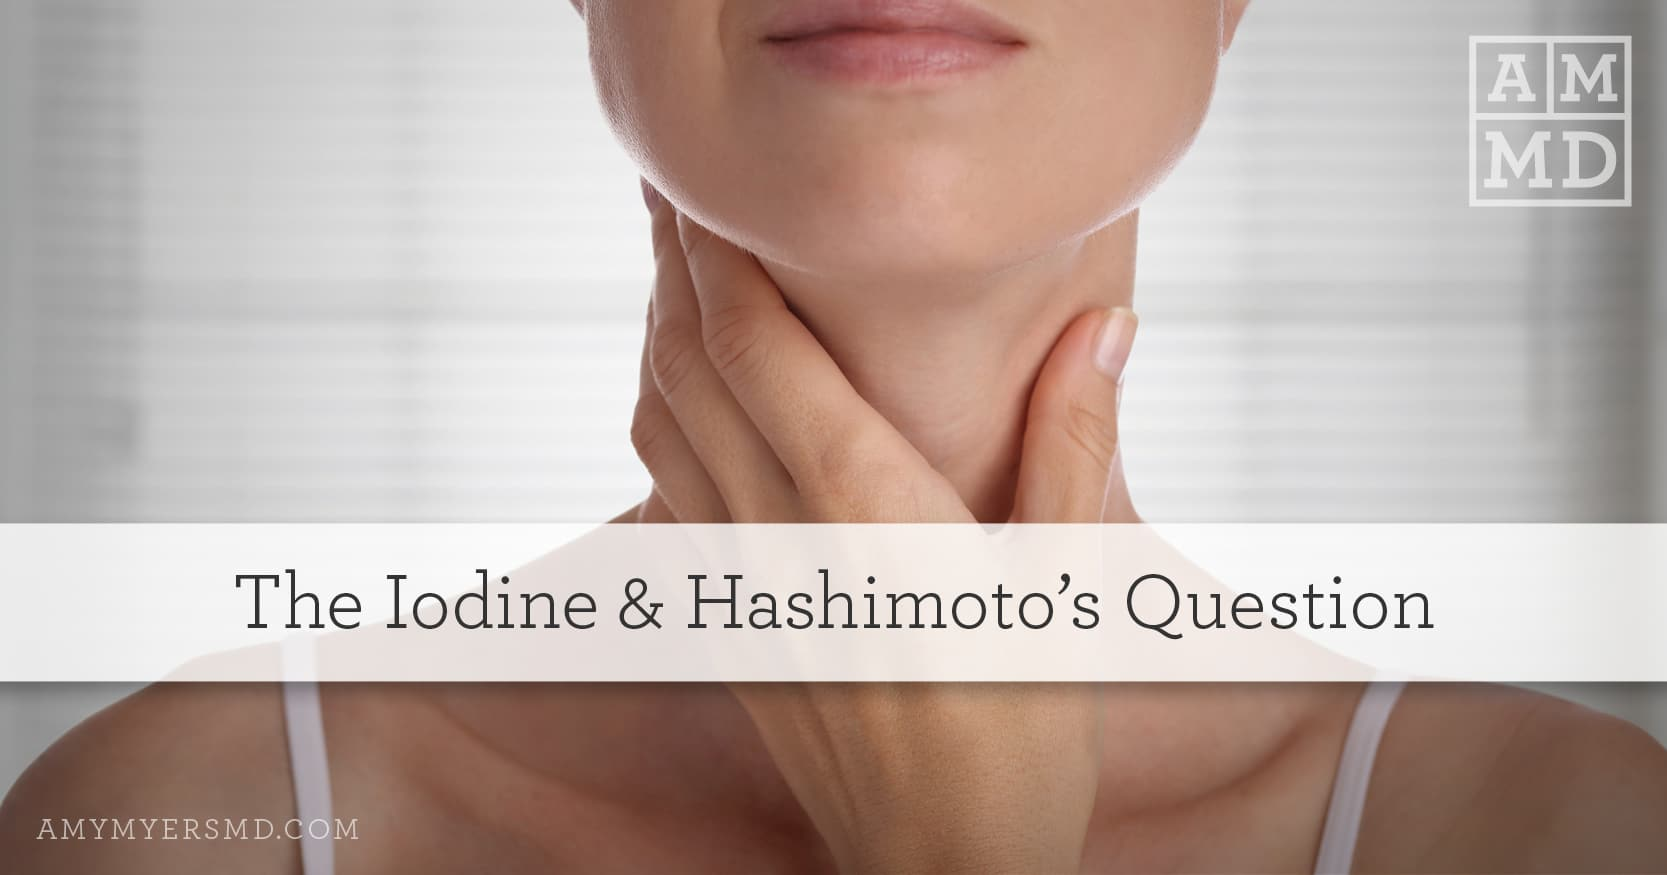 The Iodine & Hashimoto's Question - Woman Holding Her Neck - Amy Myers MD